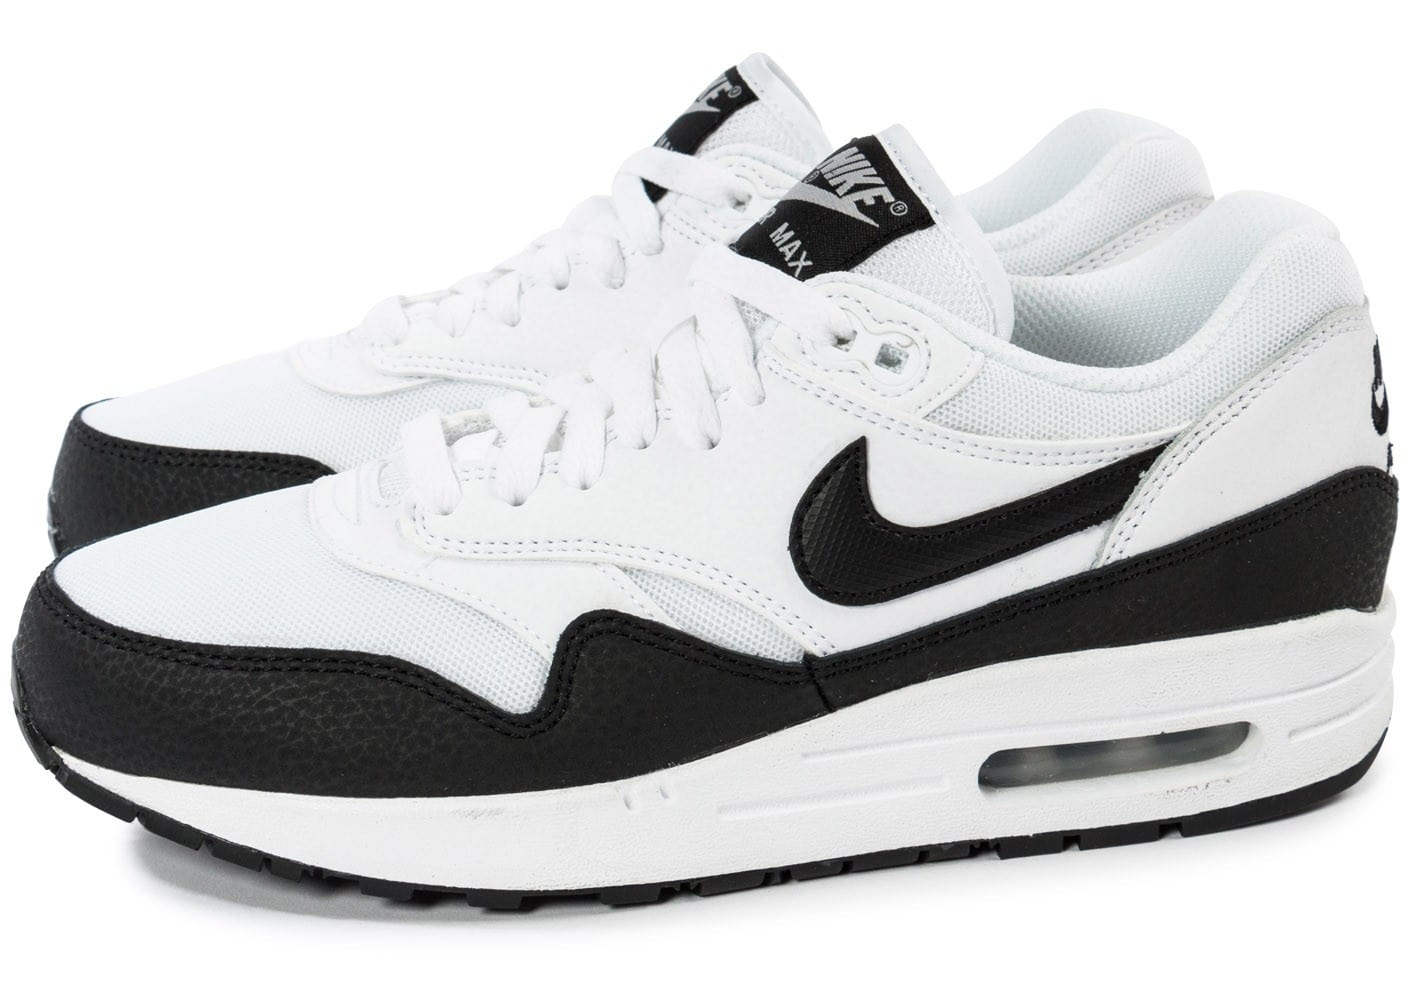 nike air max 1 essential blanc noir chaussures chaussures chausport. Black Bedroom Furniture Sets. Home Design Ideas